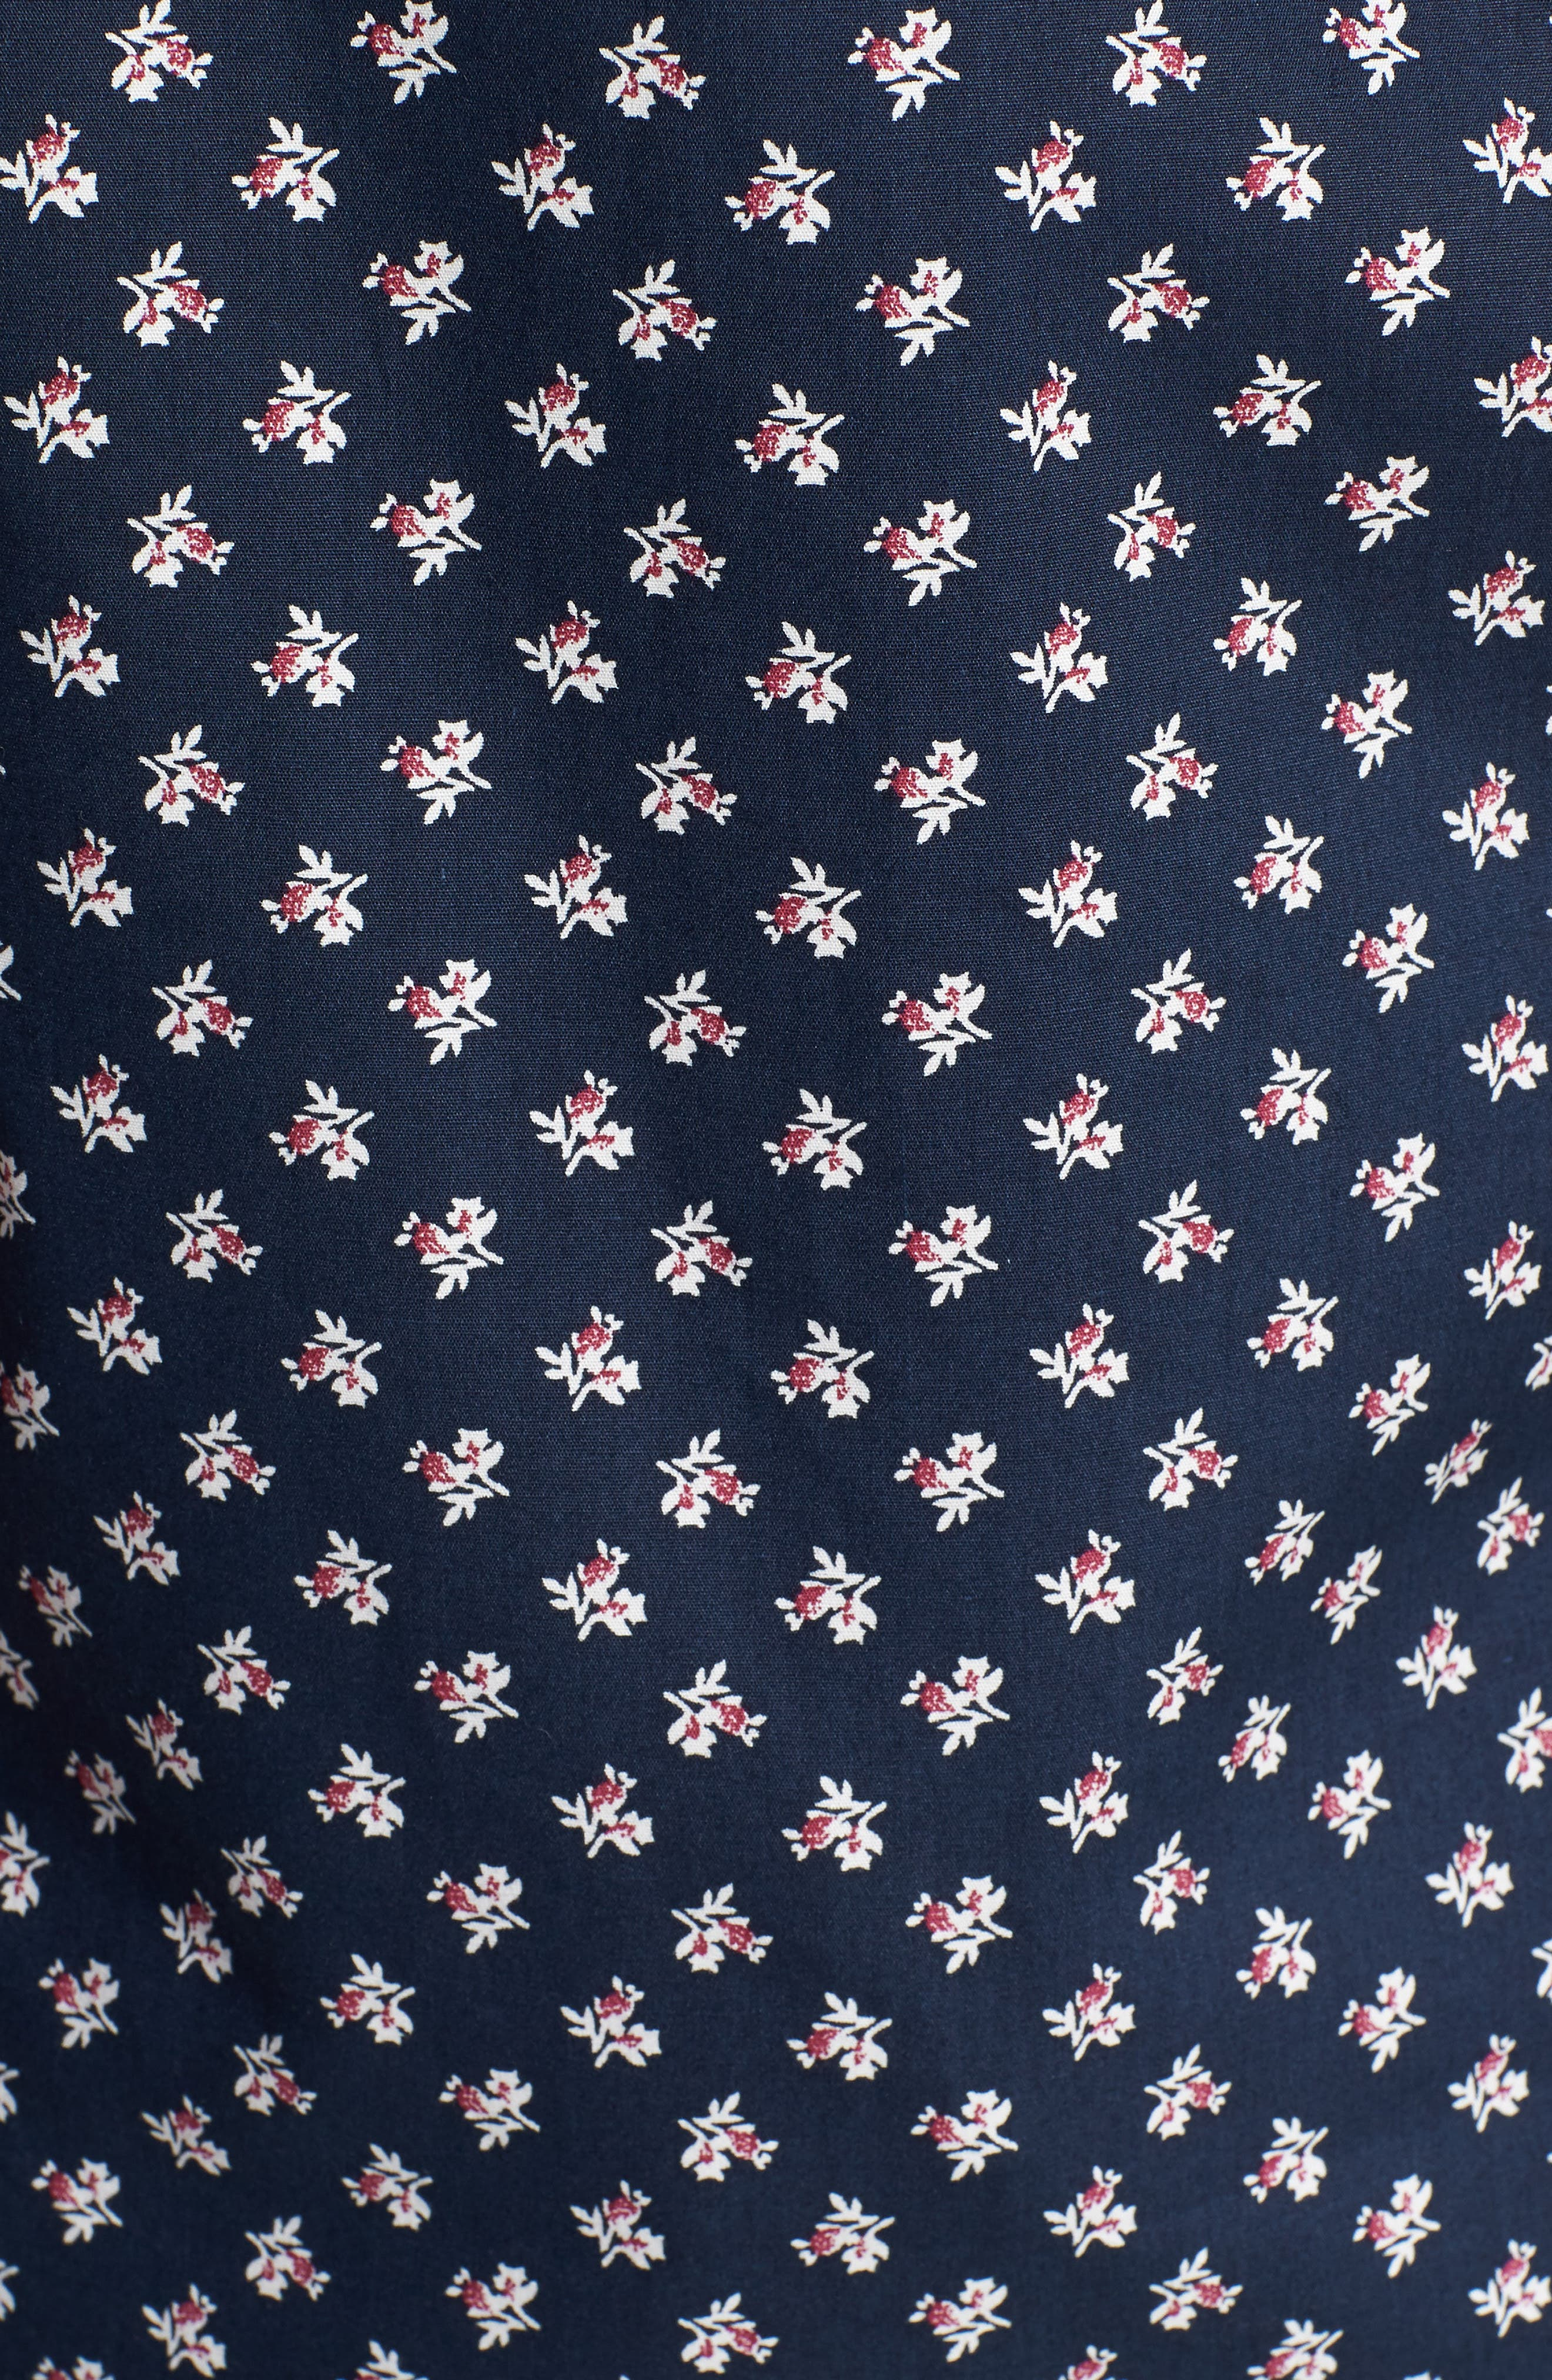 'Crossfire' Floral Print Short Sleeve Woven Shirt,                             Alternate thumbnail 9, color,